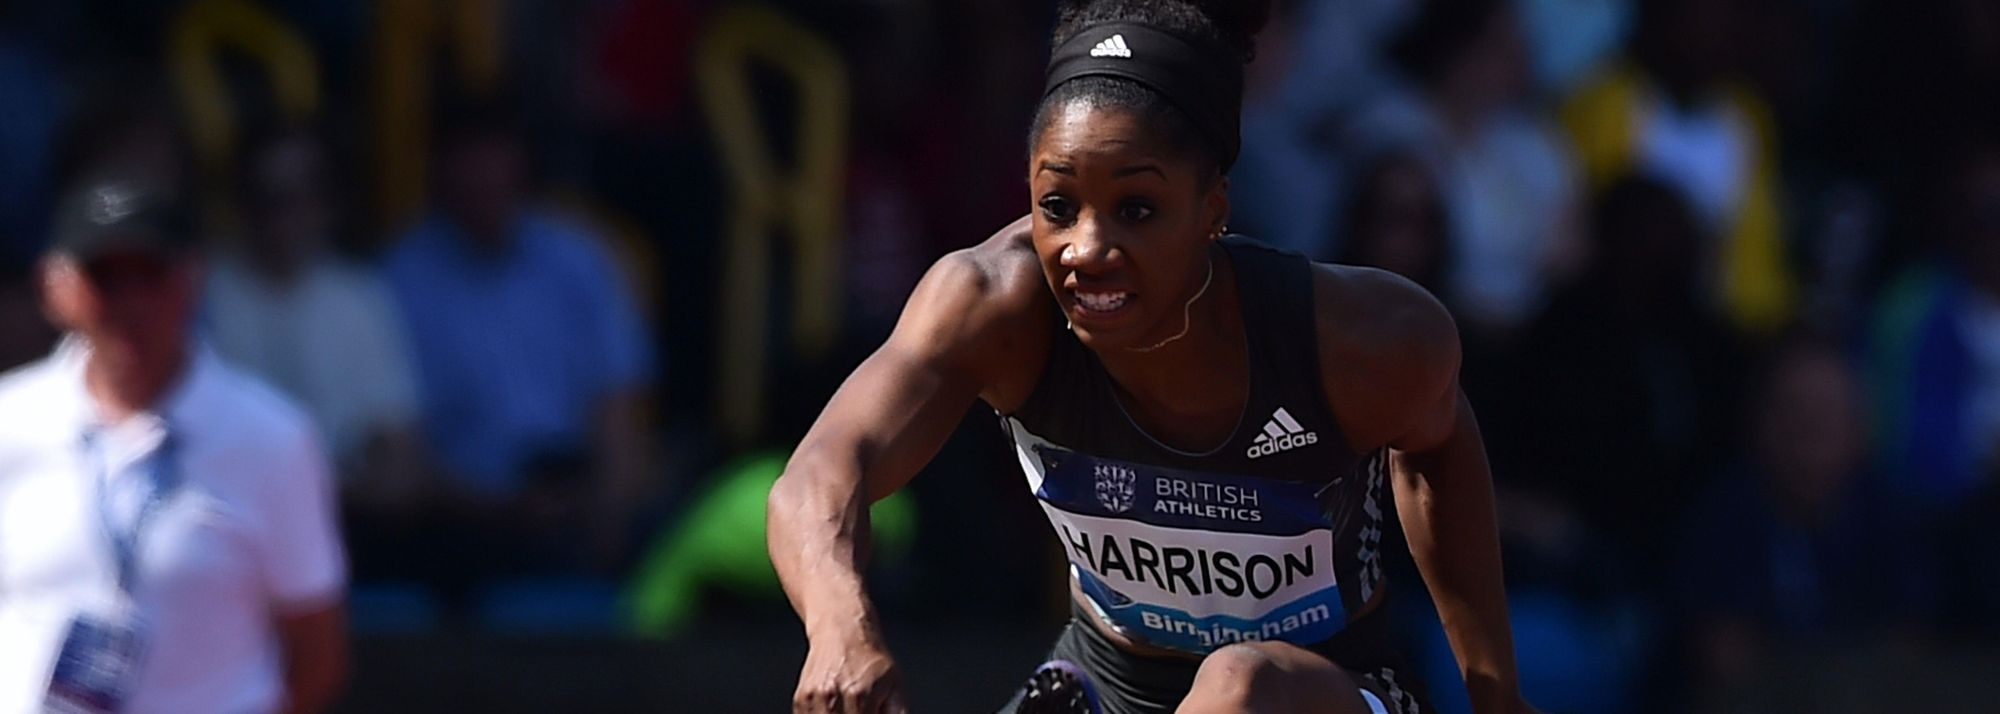 Kendra Harrison and Johannes Vetter are the latest global stars to sign up to the Müller British Grand Prix as Gateshead prepares to host its second Wanda Diamond League meeting of the year on Tuesday 13 July.